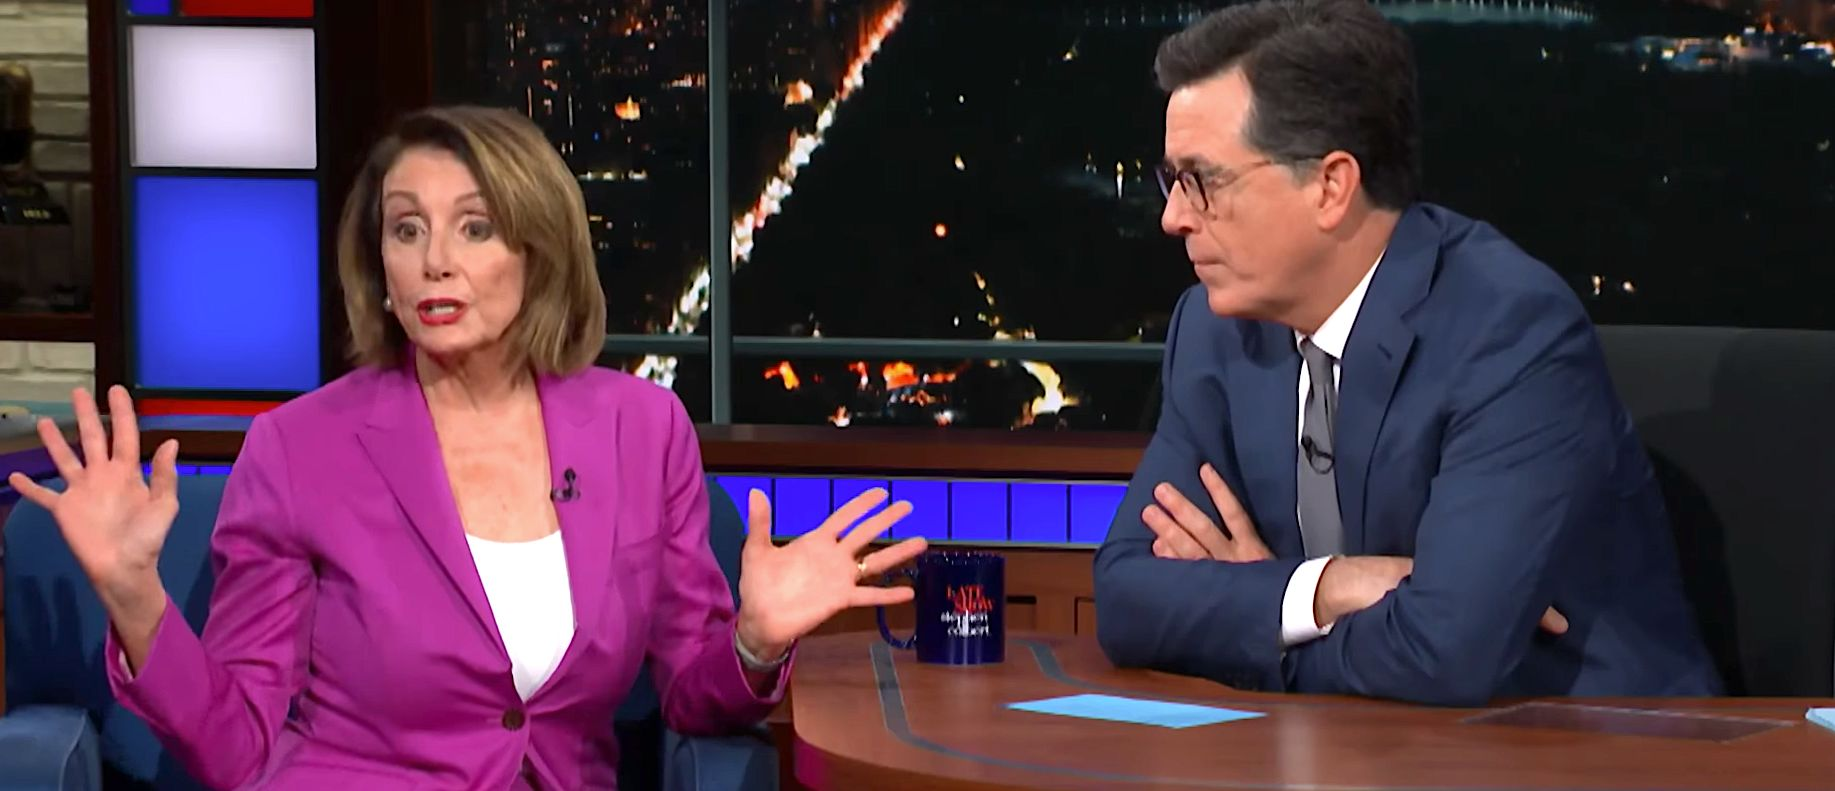 Nancy Pelosi and Stephen Colbert